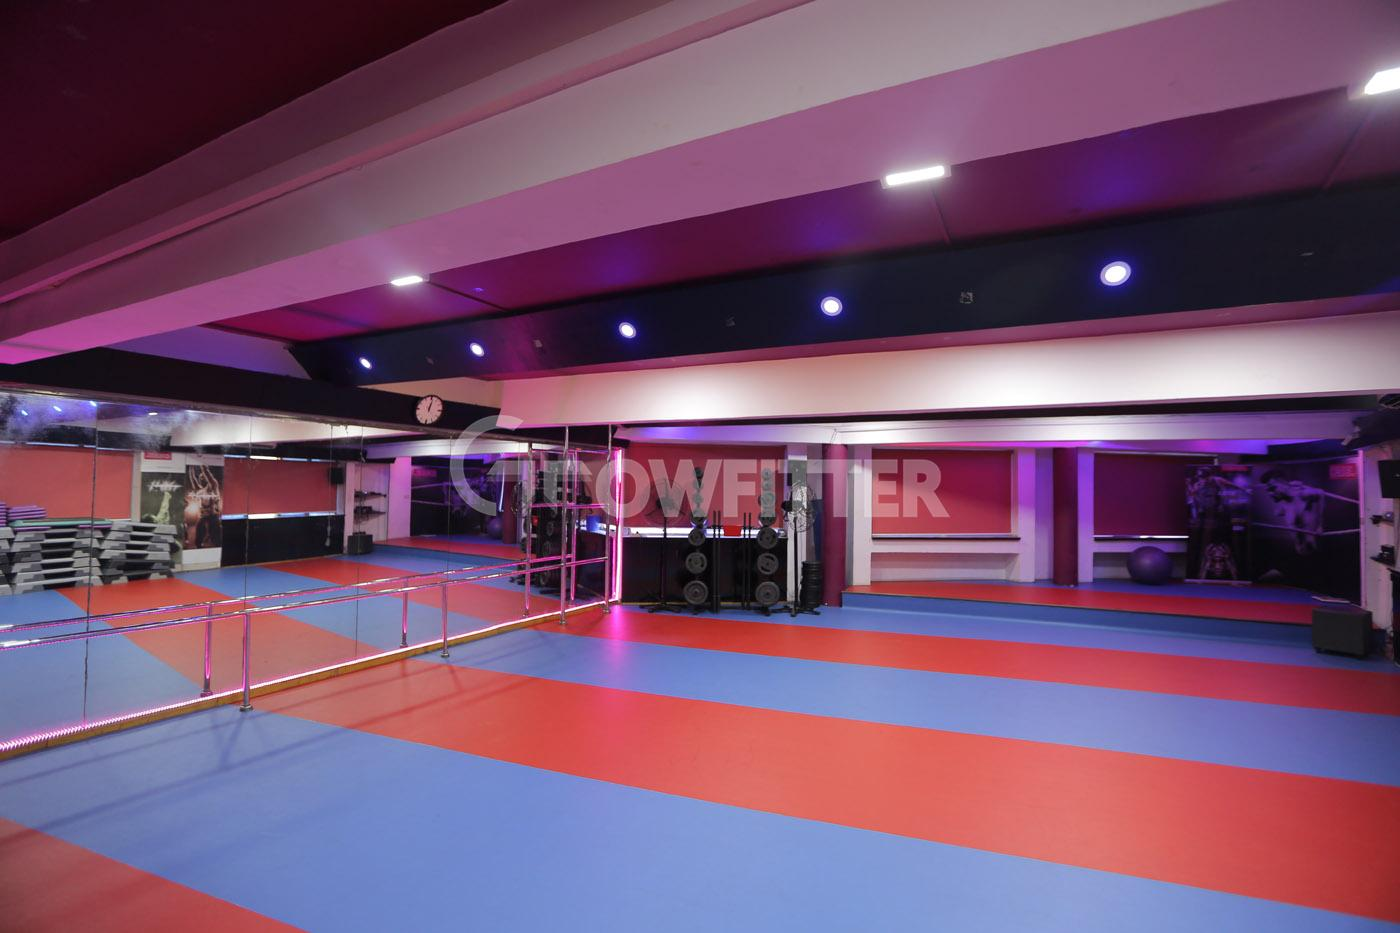 Chisel Fitness Bellandur  Bangalore  Gym Membership Fees Timings Reviews Amenities  Growfitter